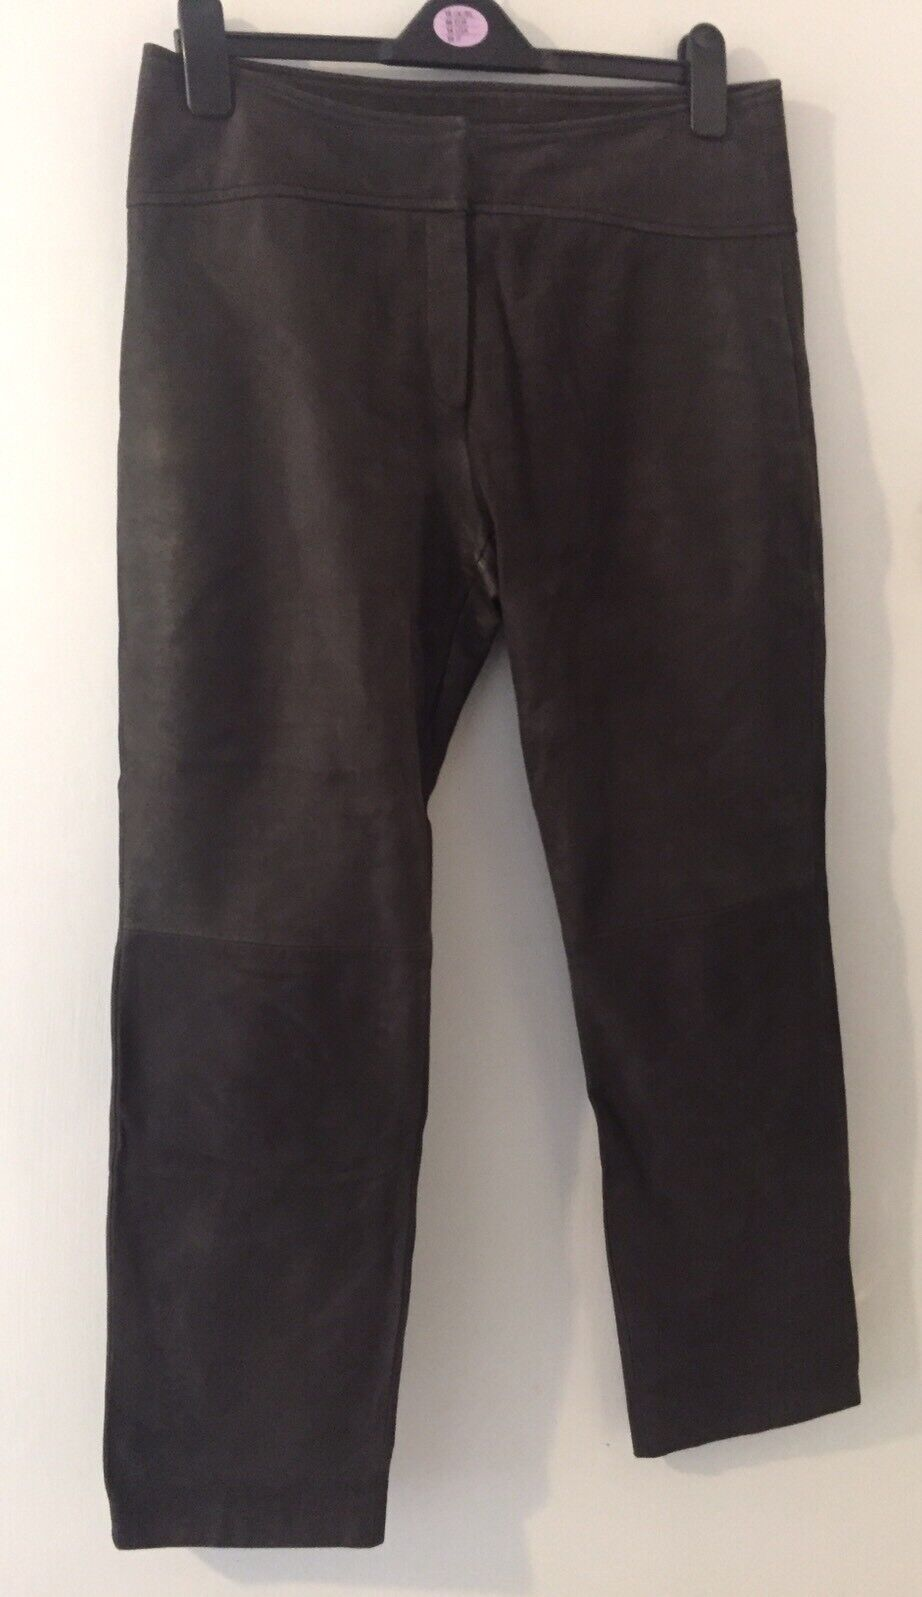 Betty Barclay Brown 100% Leather With Slight Glitter Look Trousers Size 14